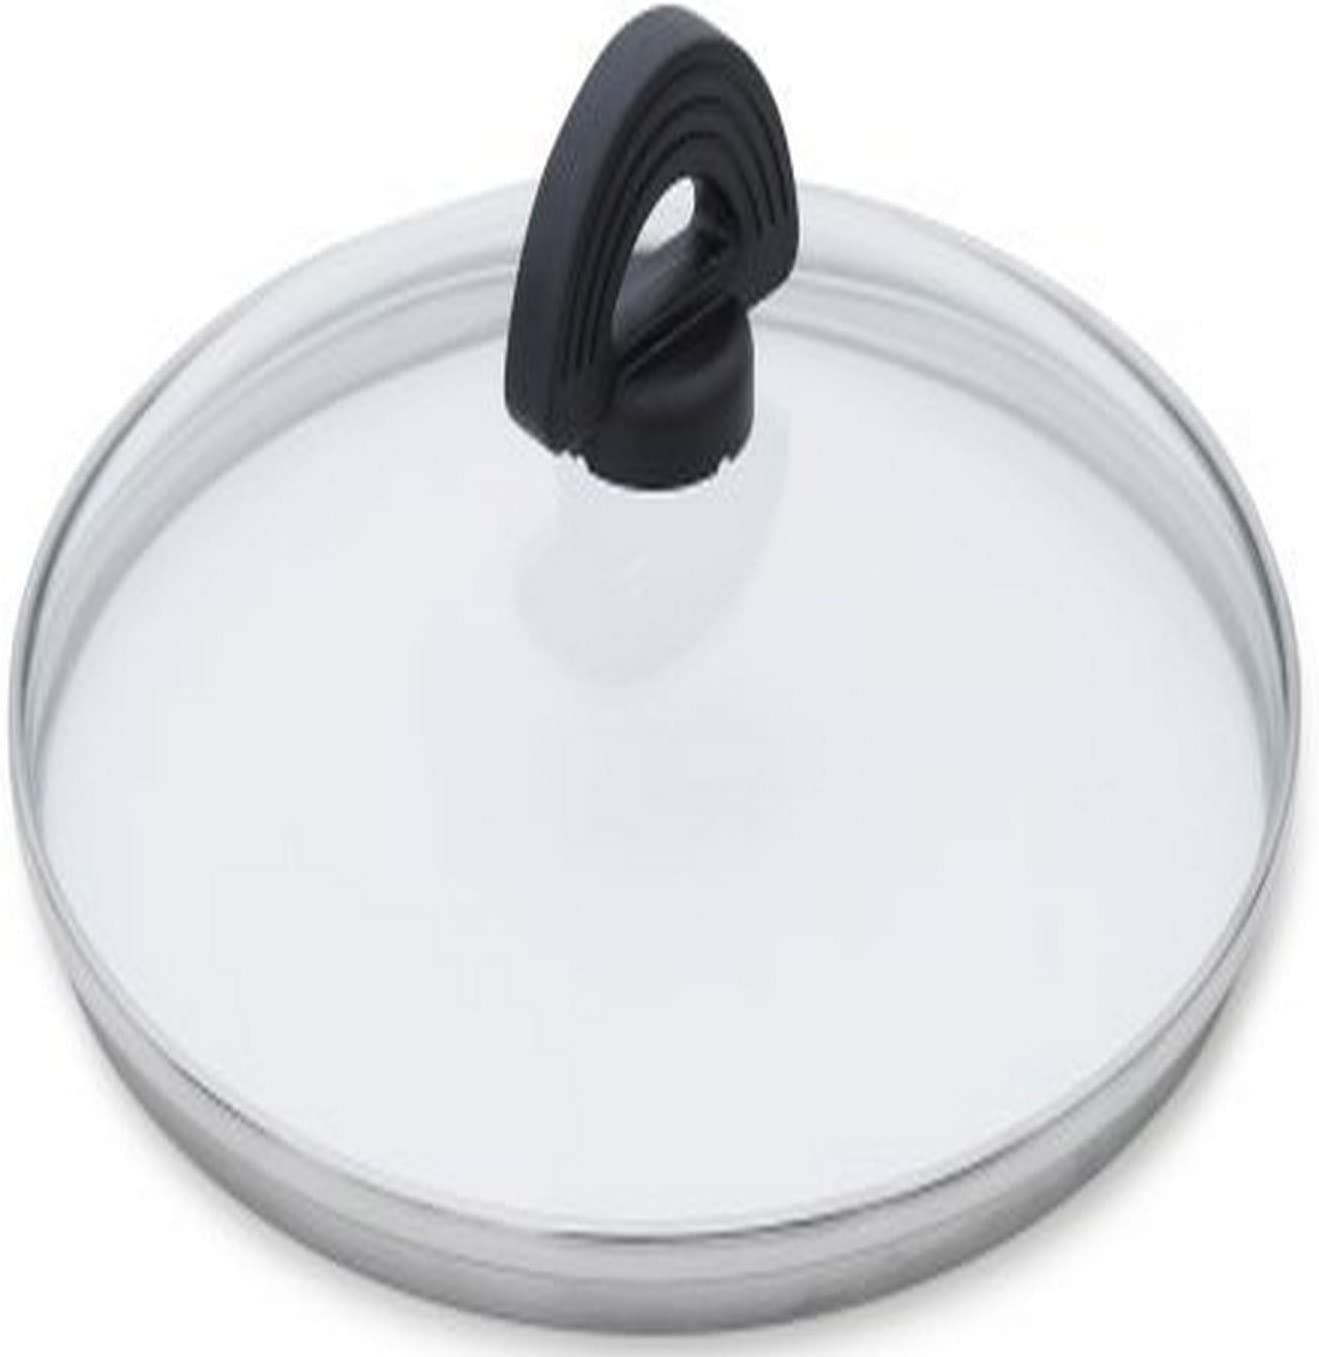 Kuhn Rikon Duromatic Glass Lid 8.75 Inch